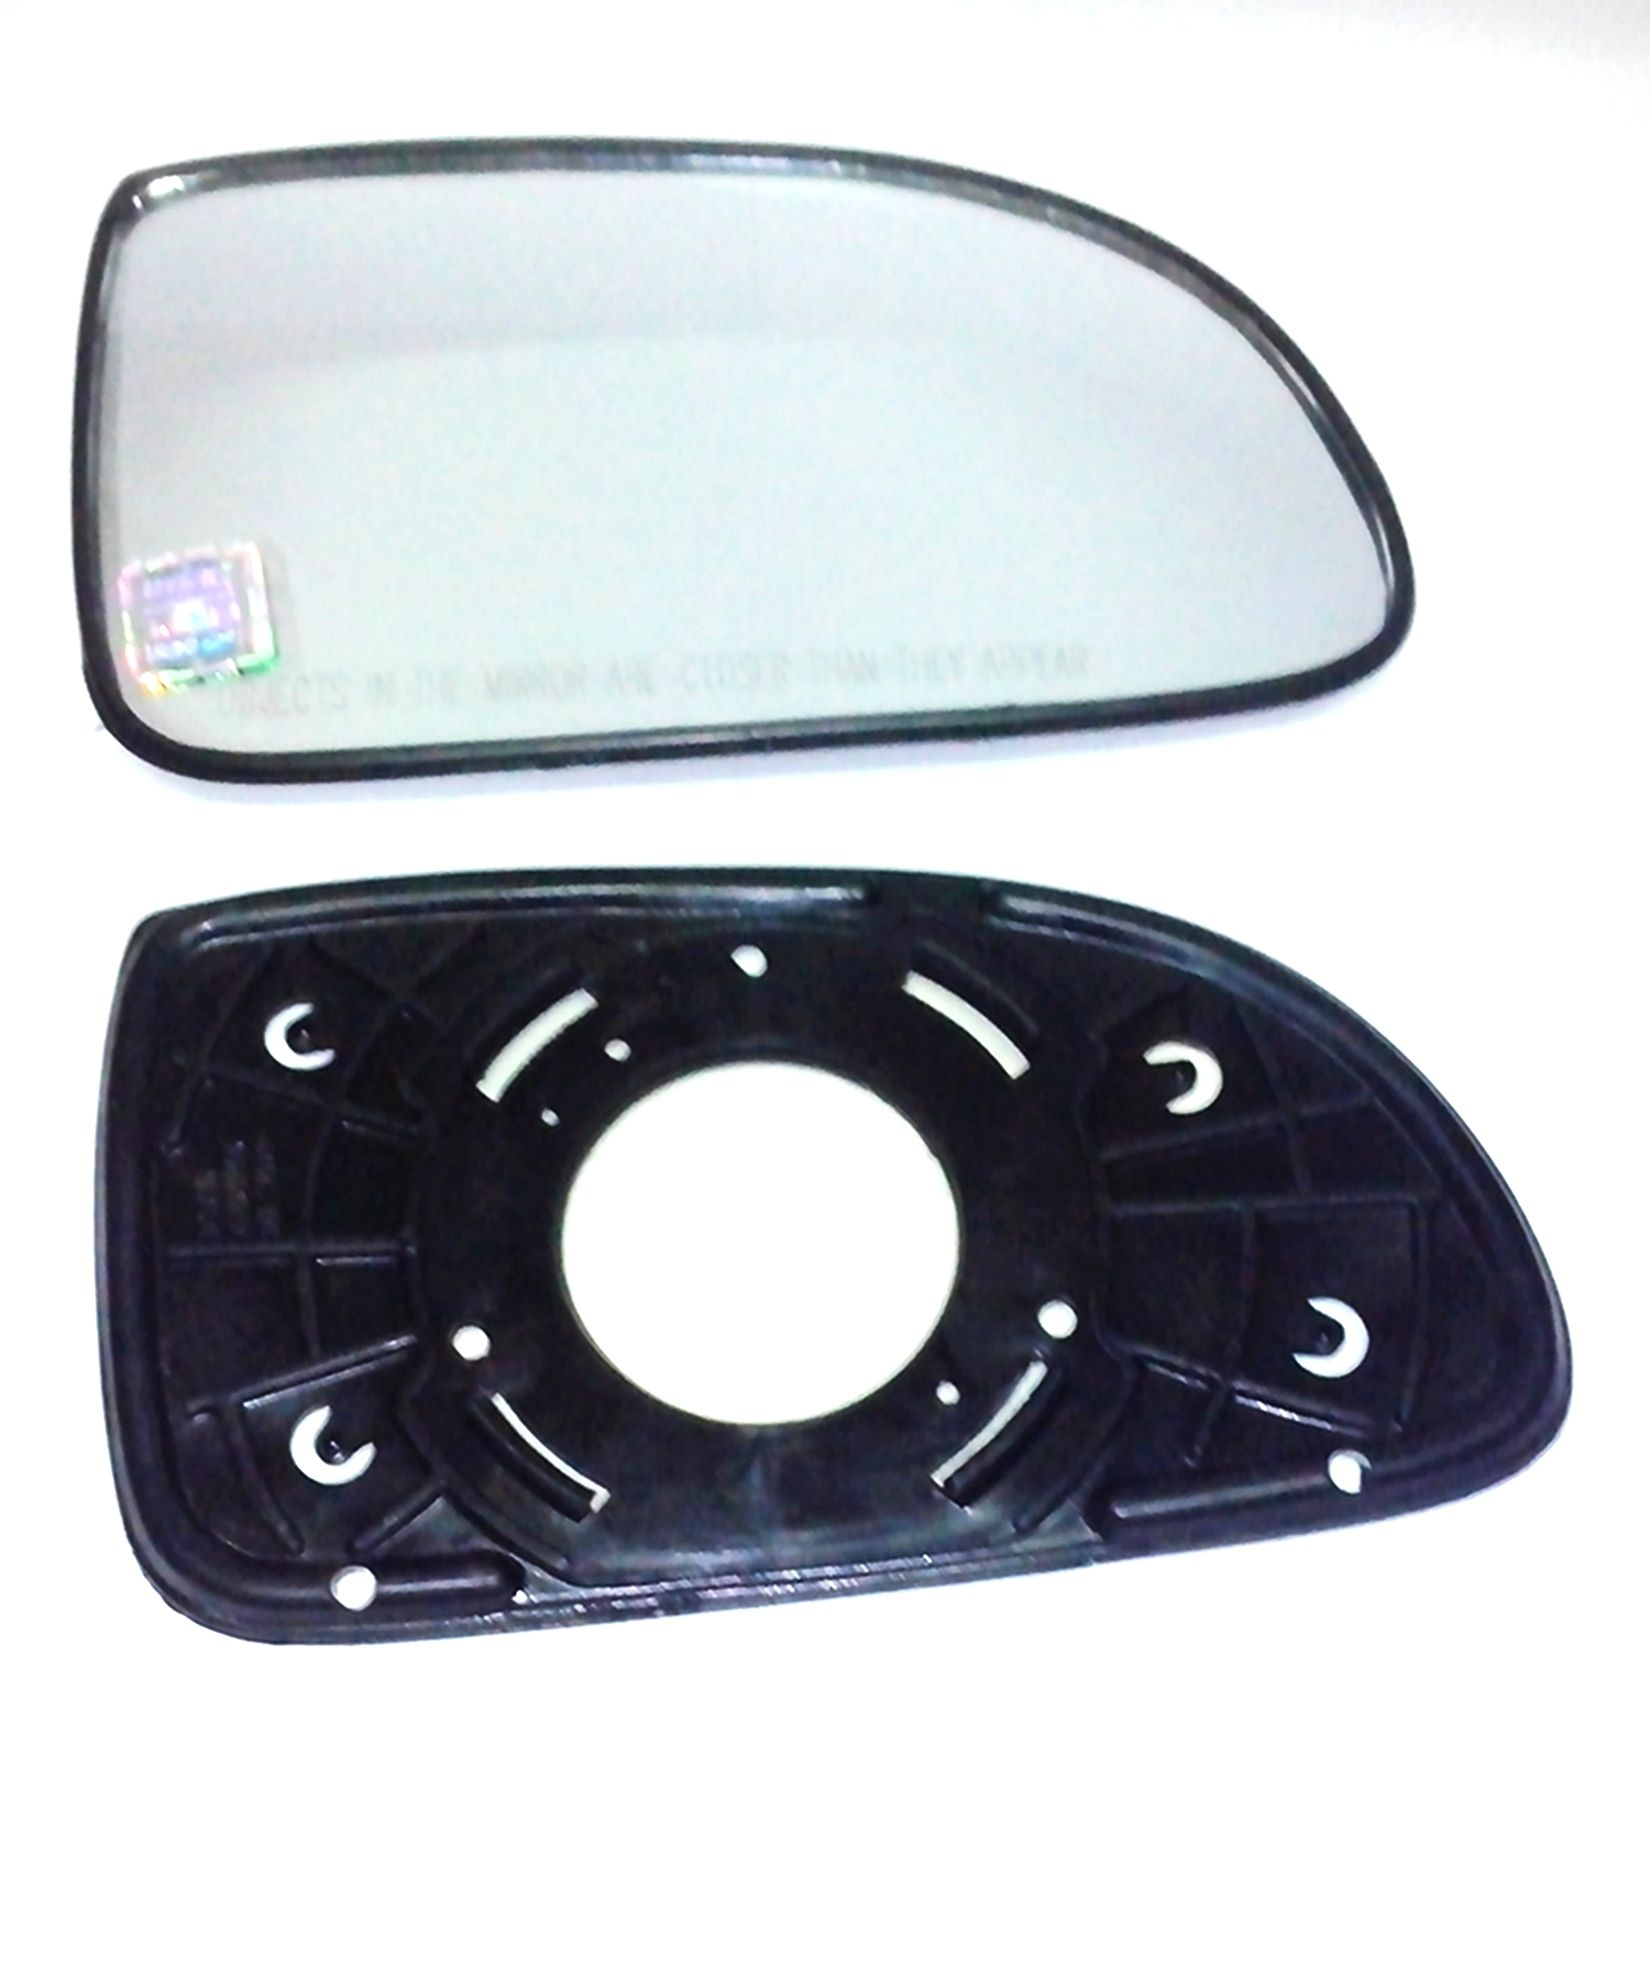 MANTRA-CONVEX MIRROR PLATES (SUB MIRROR PLATES) FOR MARUTI A STAR LEFT SIDE